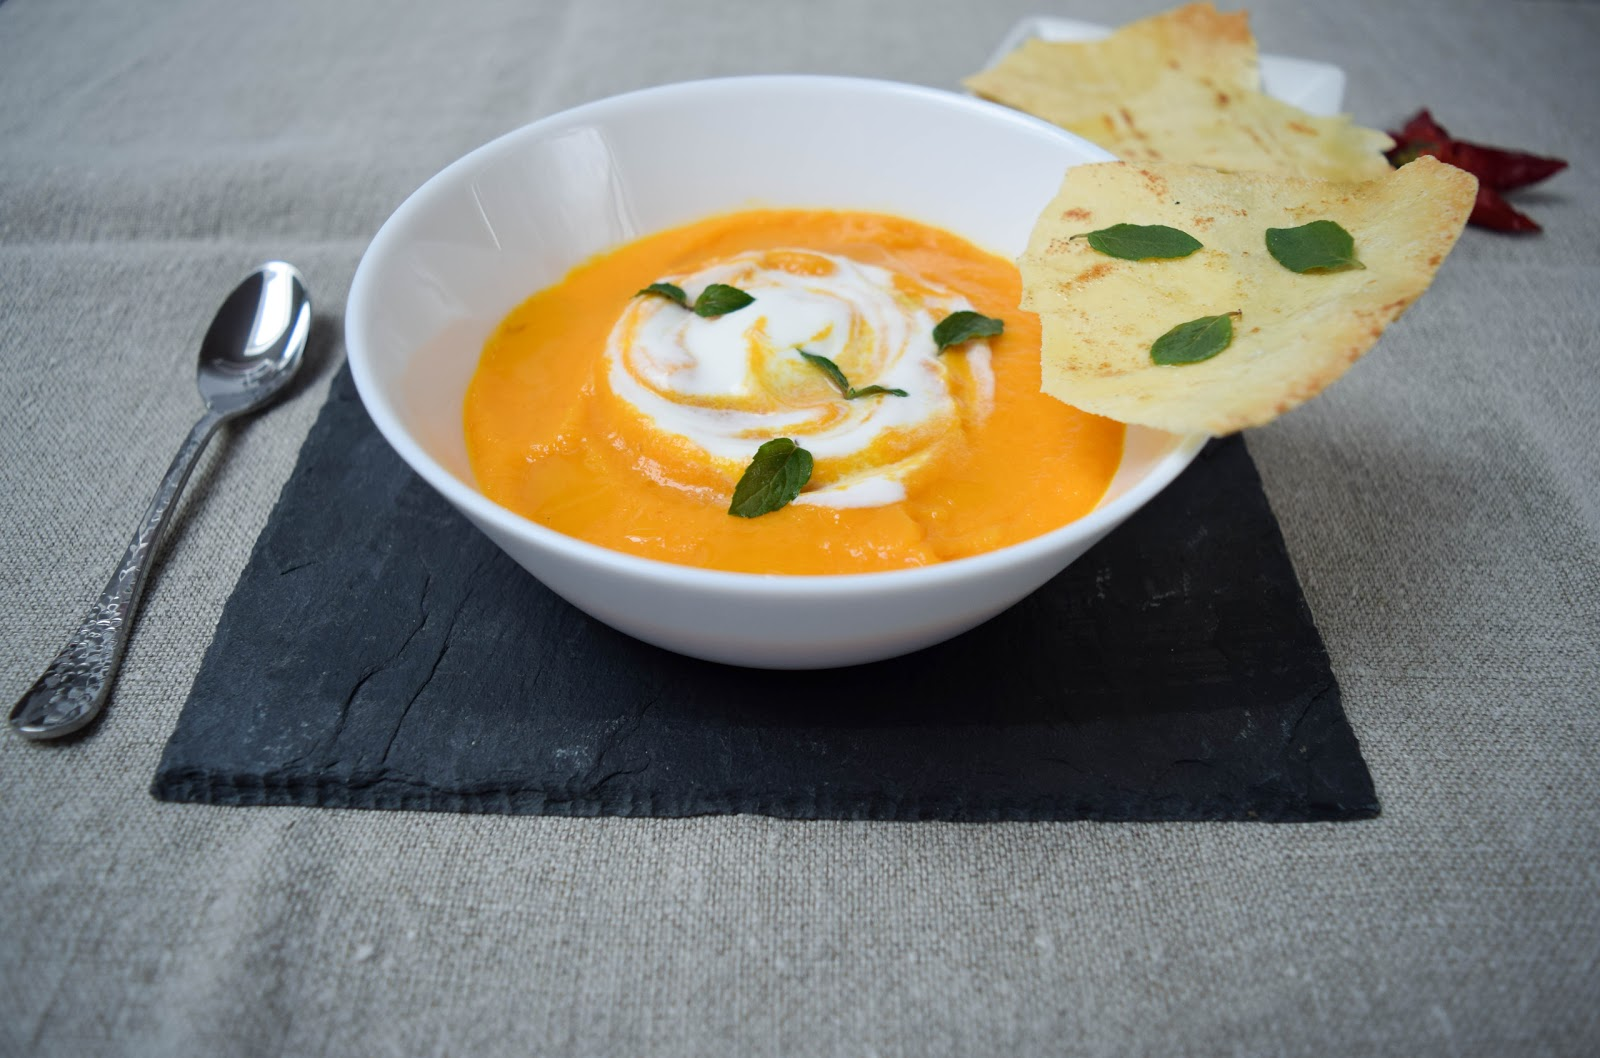 Spicy creamy carrot soup with carasau bread